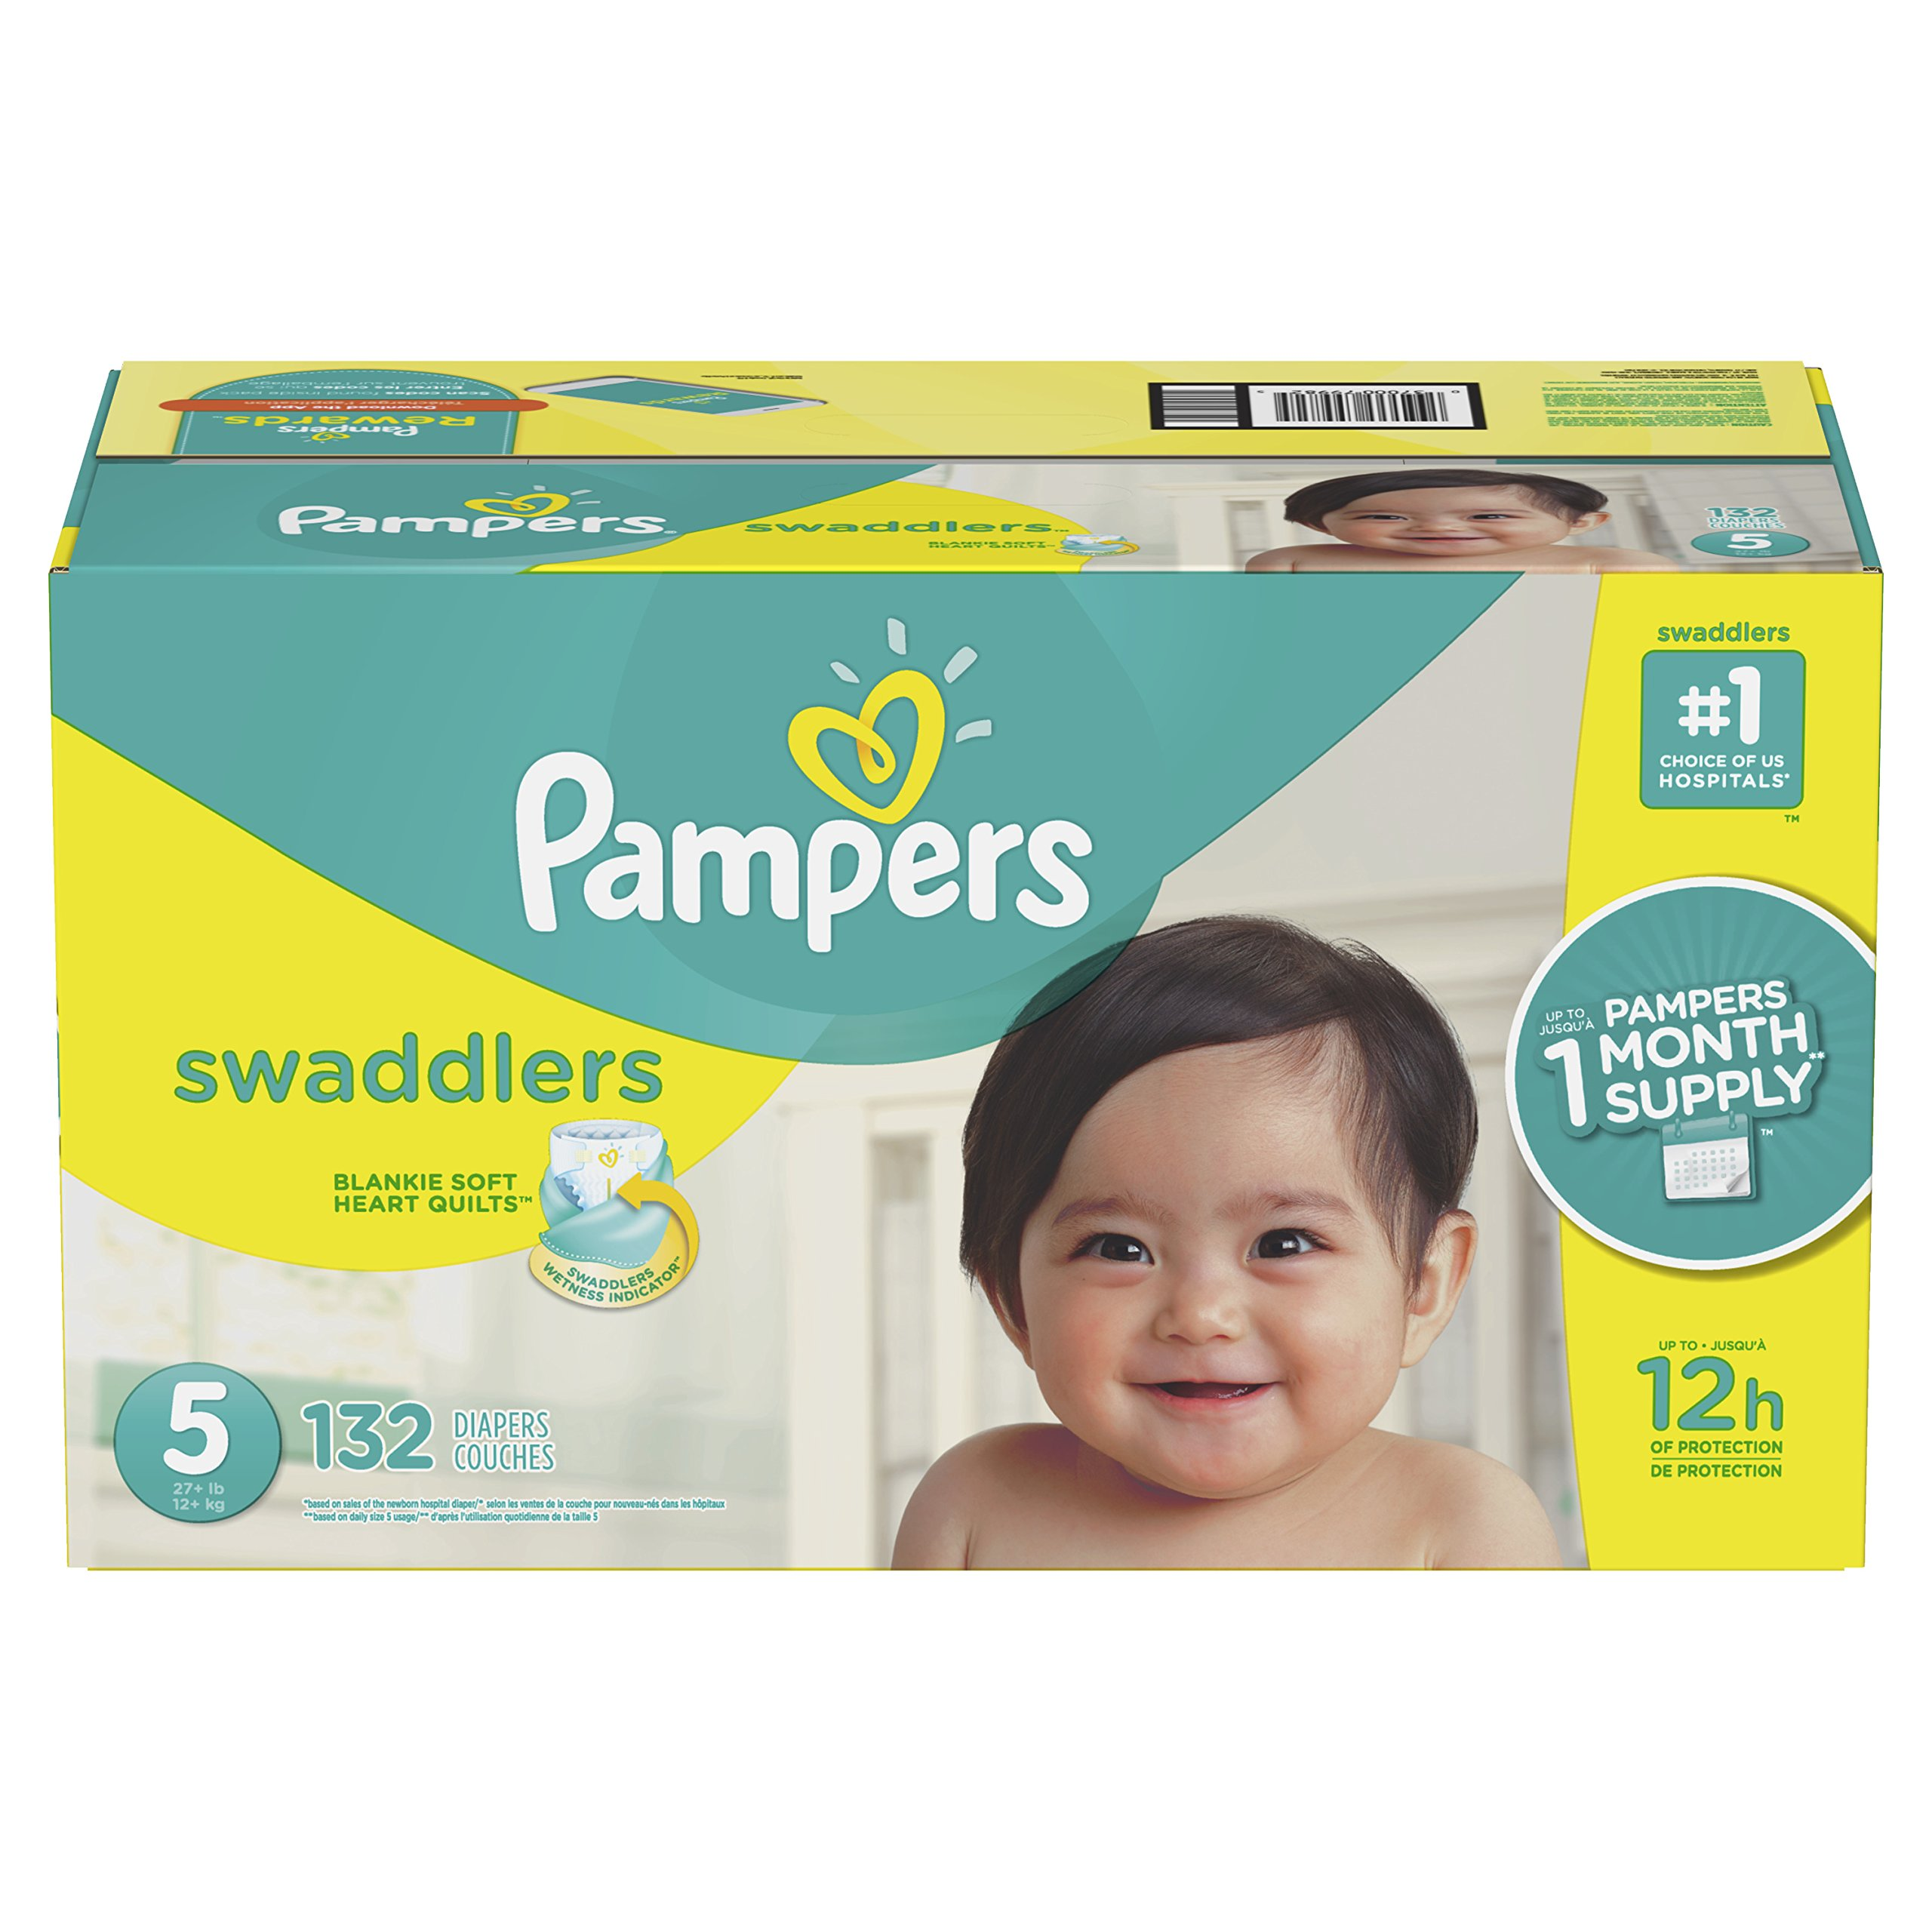 Pampers Swaddlers Disposable Diapers Size 5, 132 Count